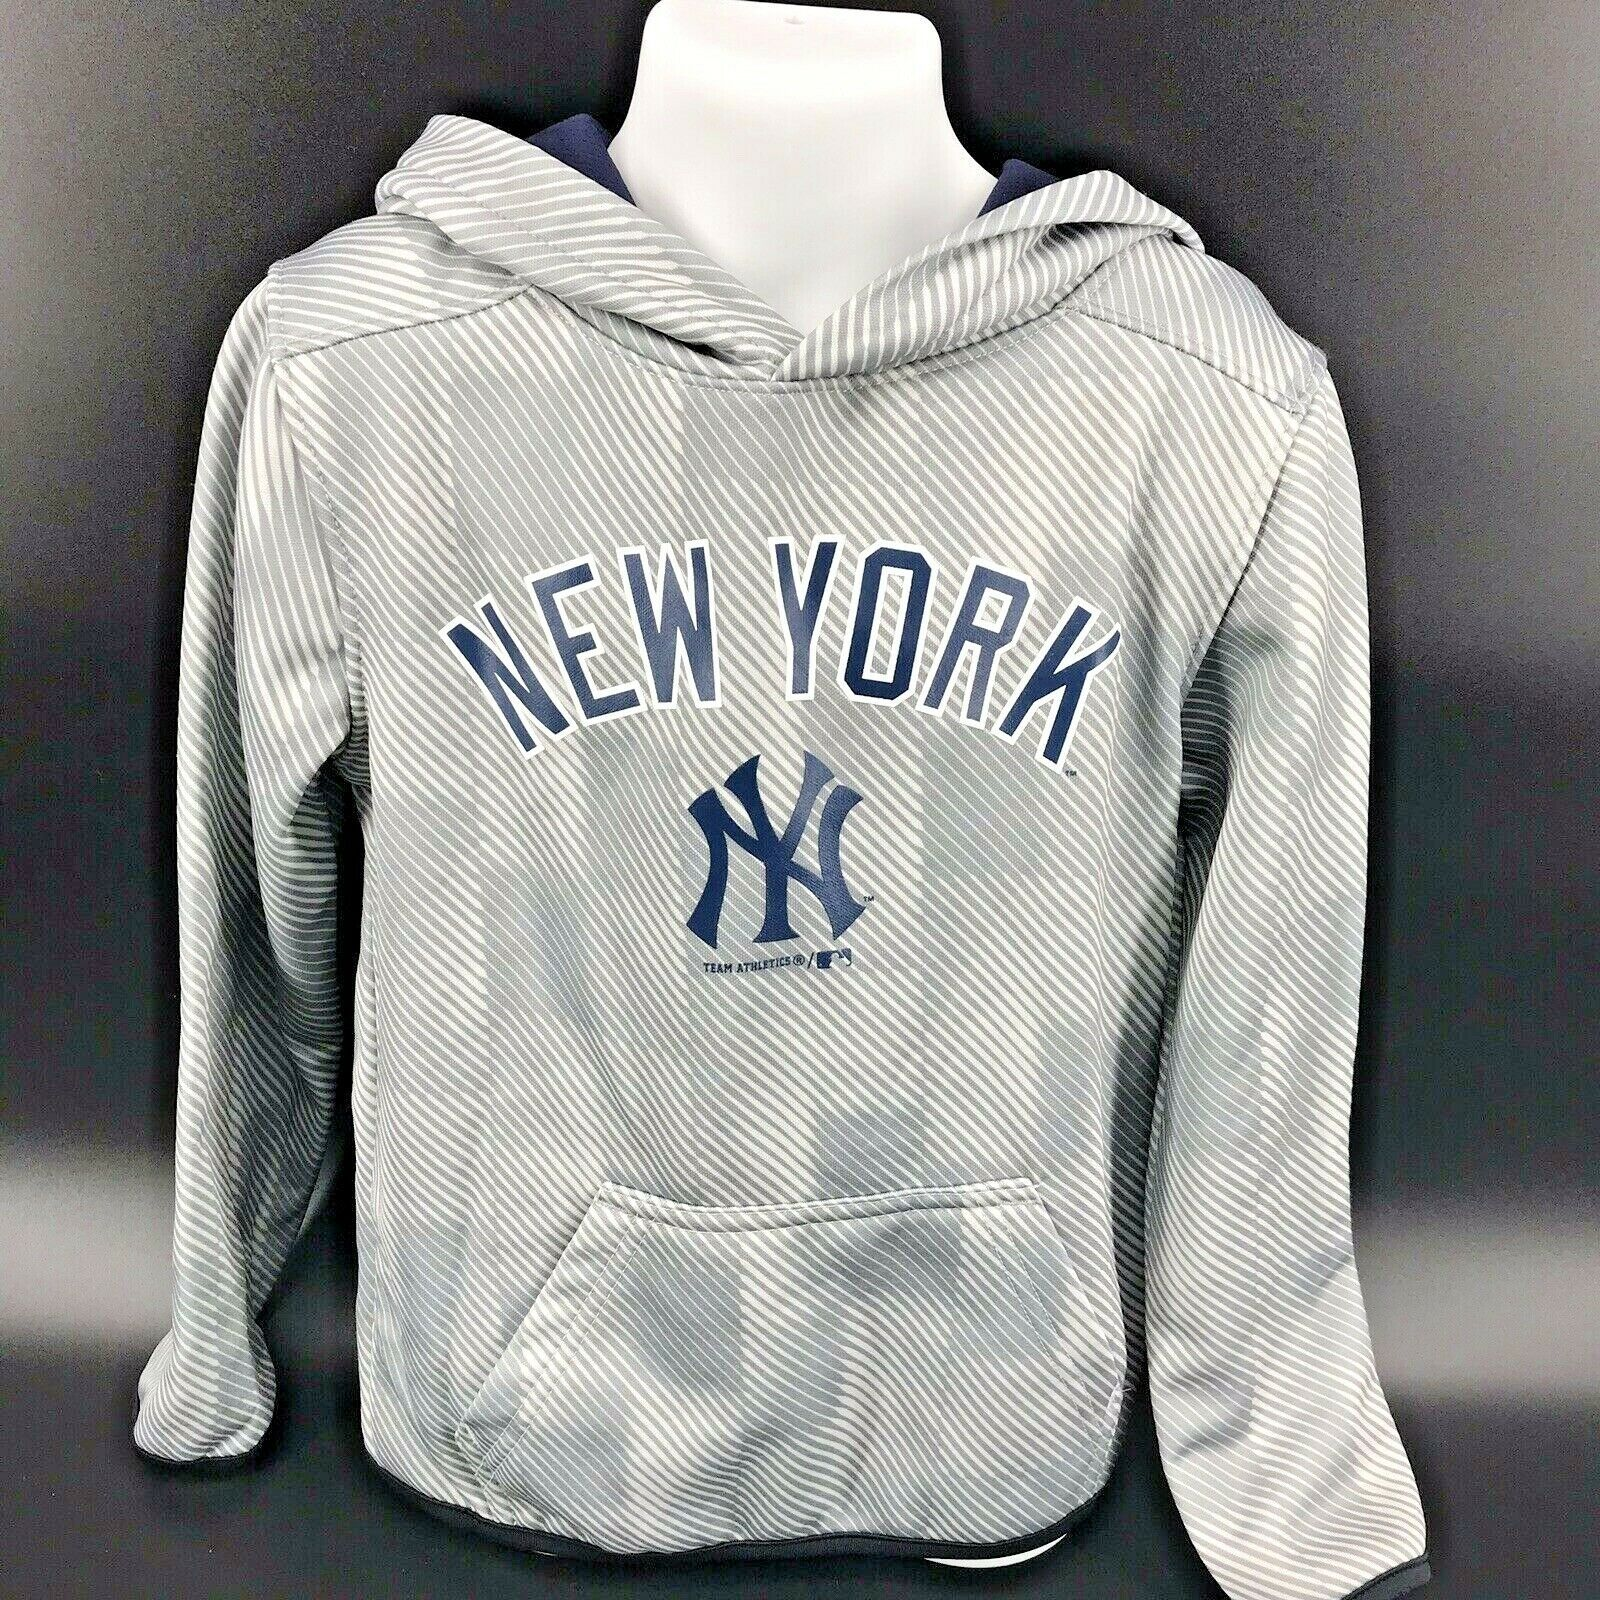 Primary image for MLB New York Yankees Hooded Sweatshirt Youth Size XS (4/5) NEW With Tags -h